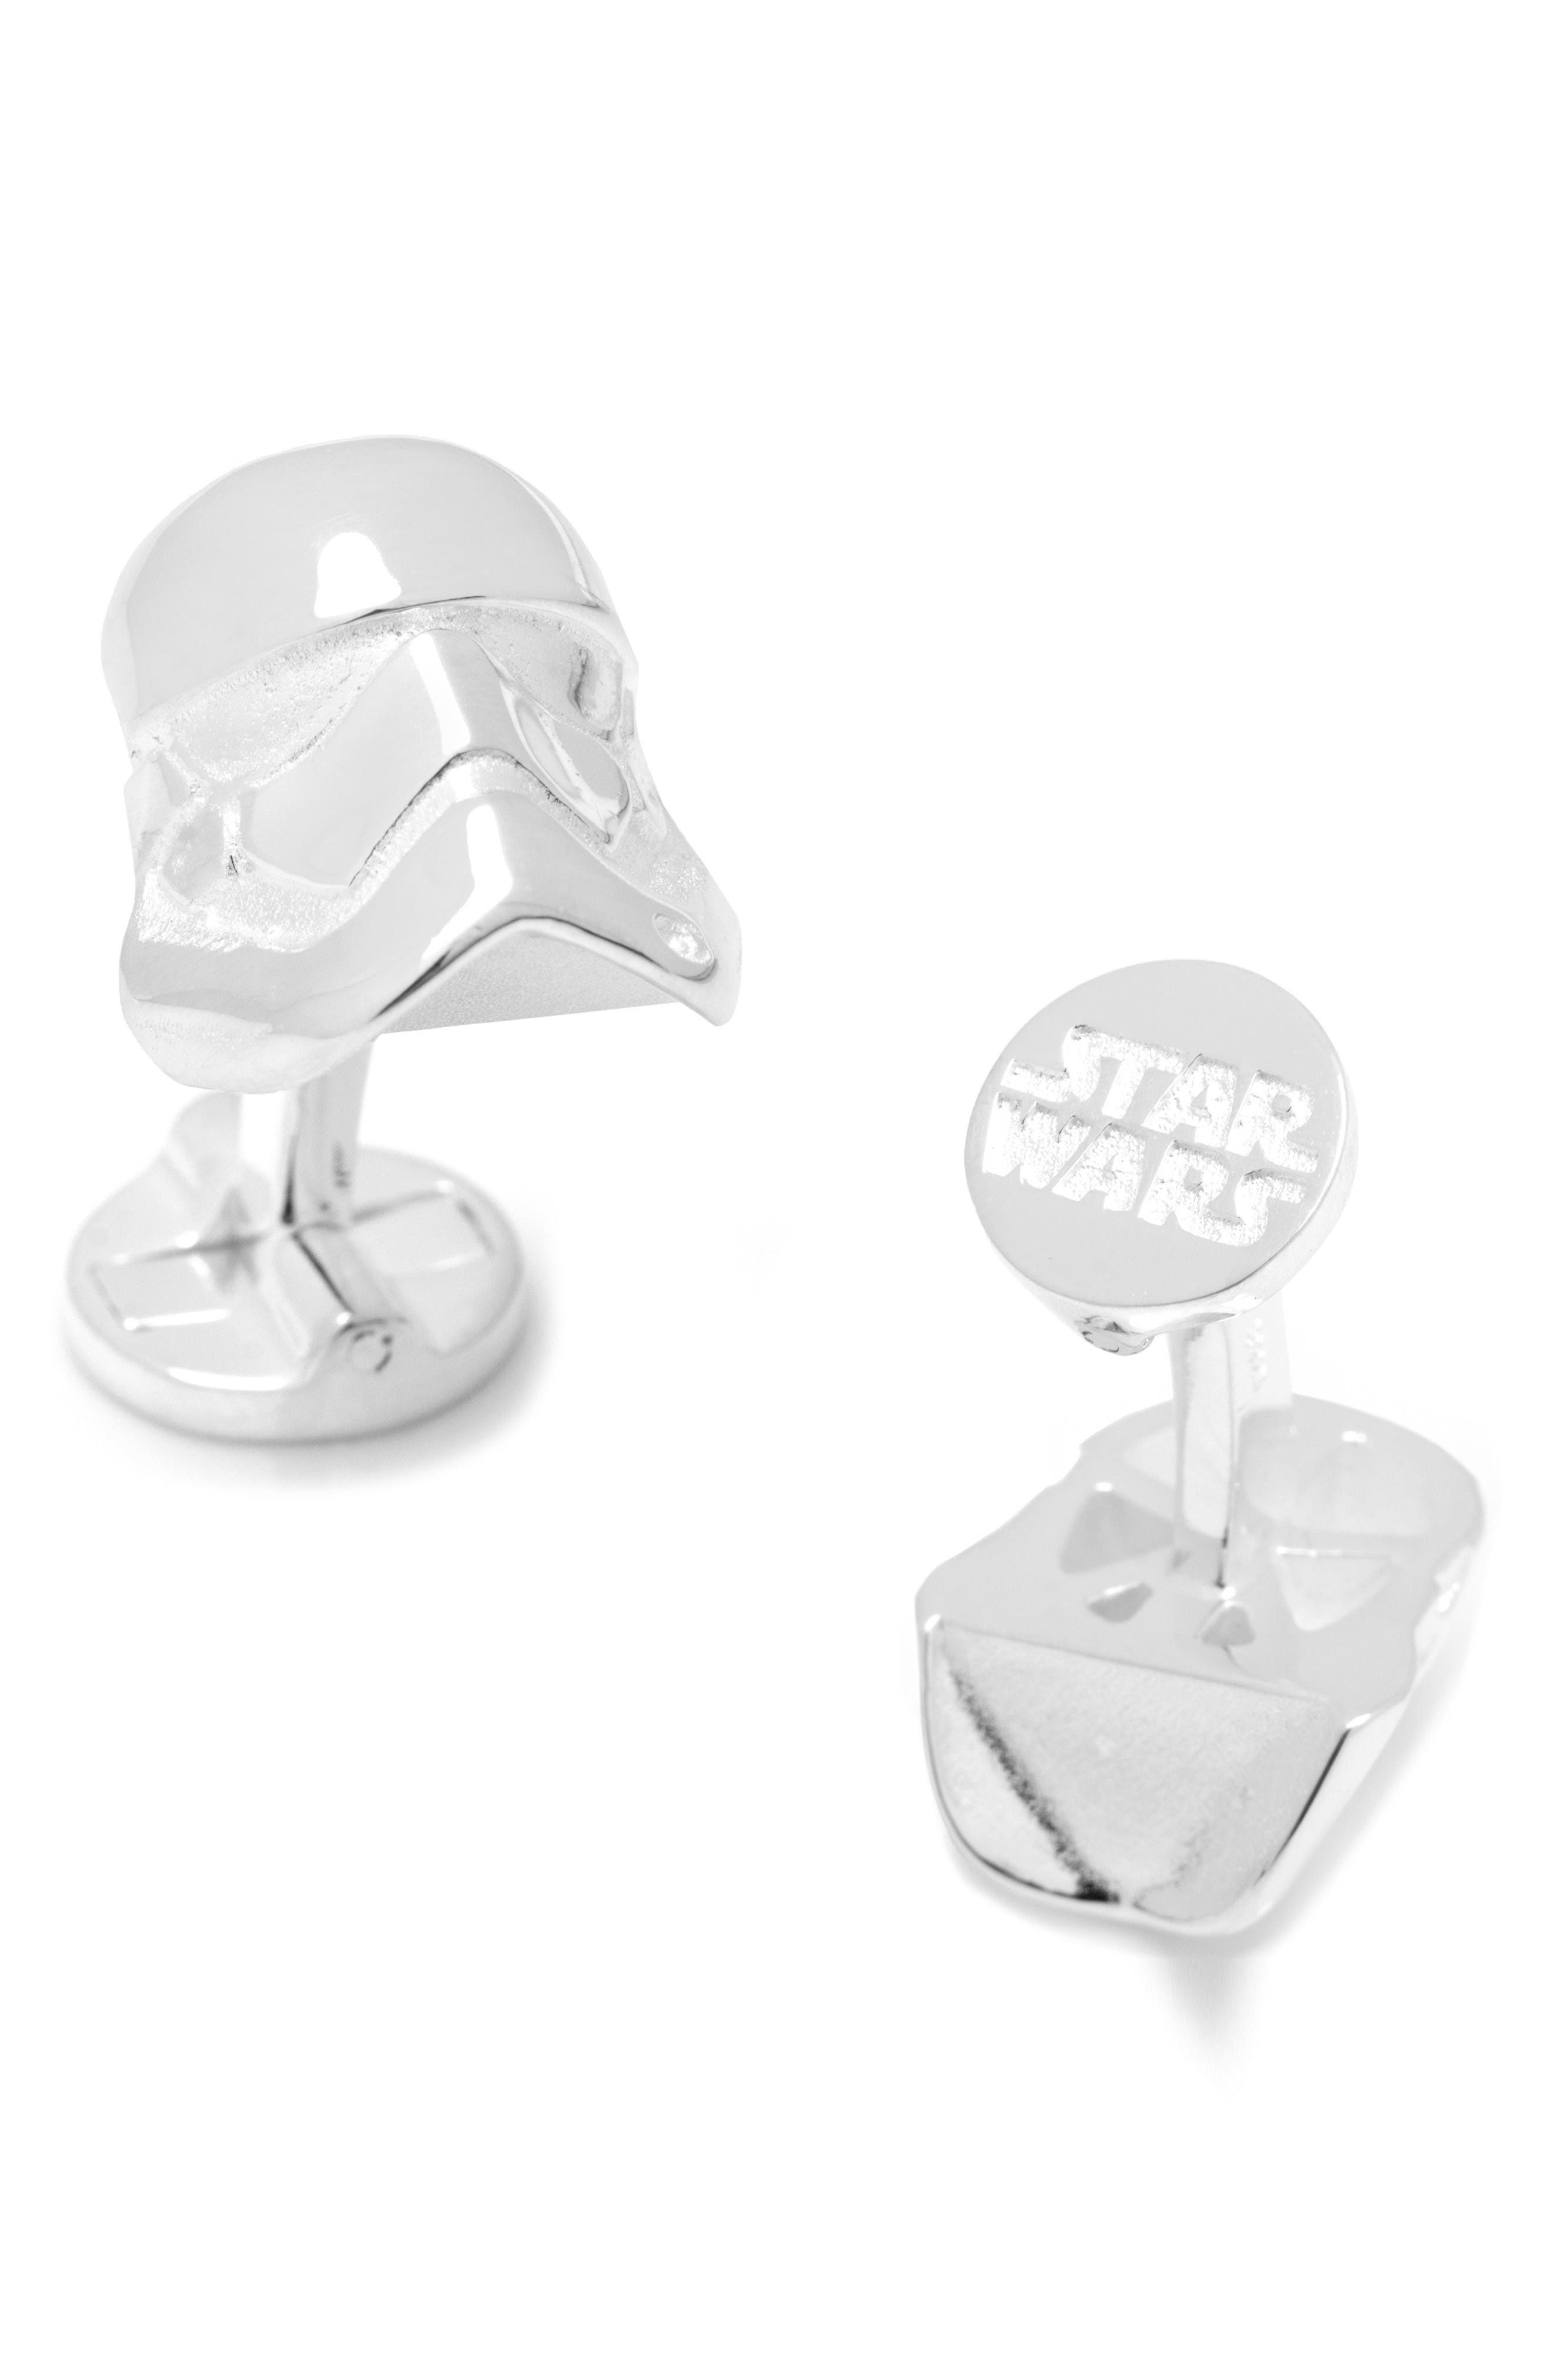 Star Wars<sup>™</sup> Stormtrooper Cuff Links,                         Main,                         color, Silver